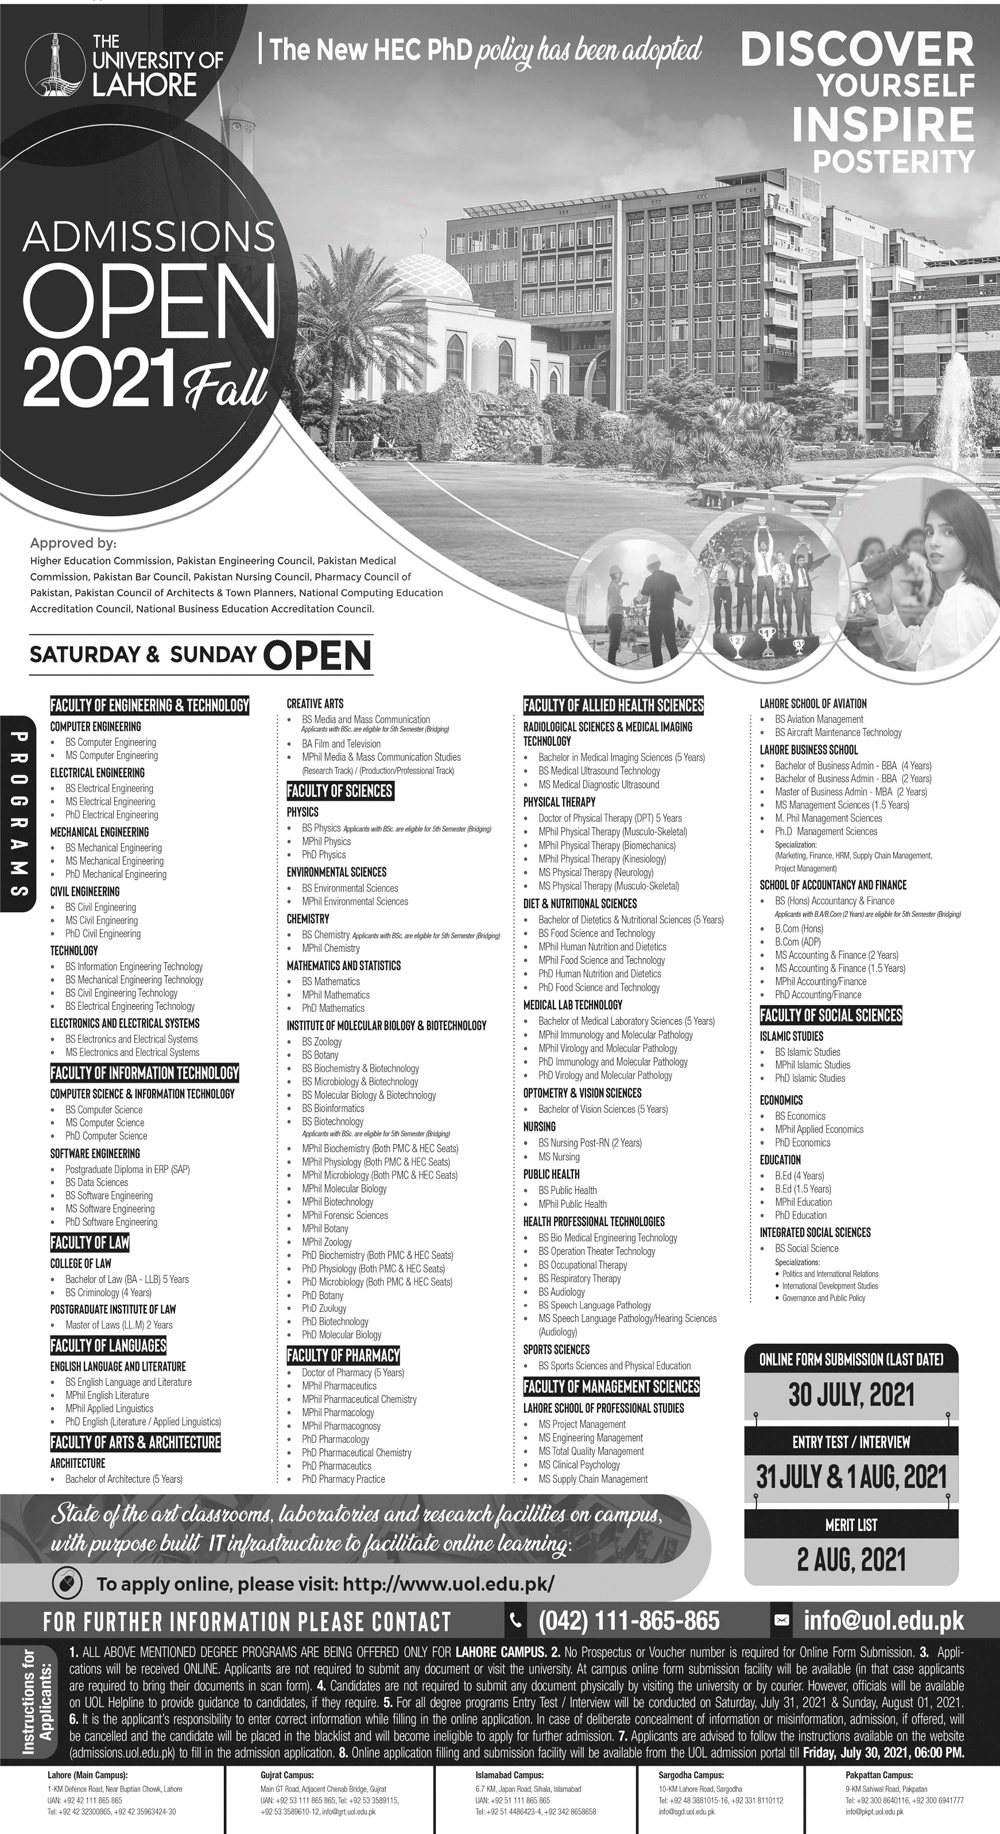 The University Lahore Admissions